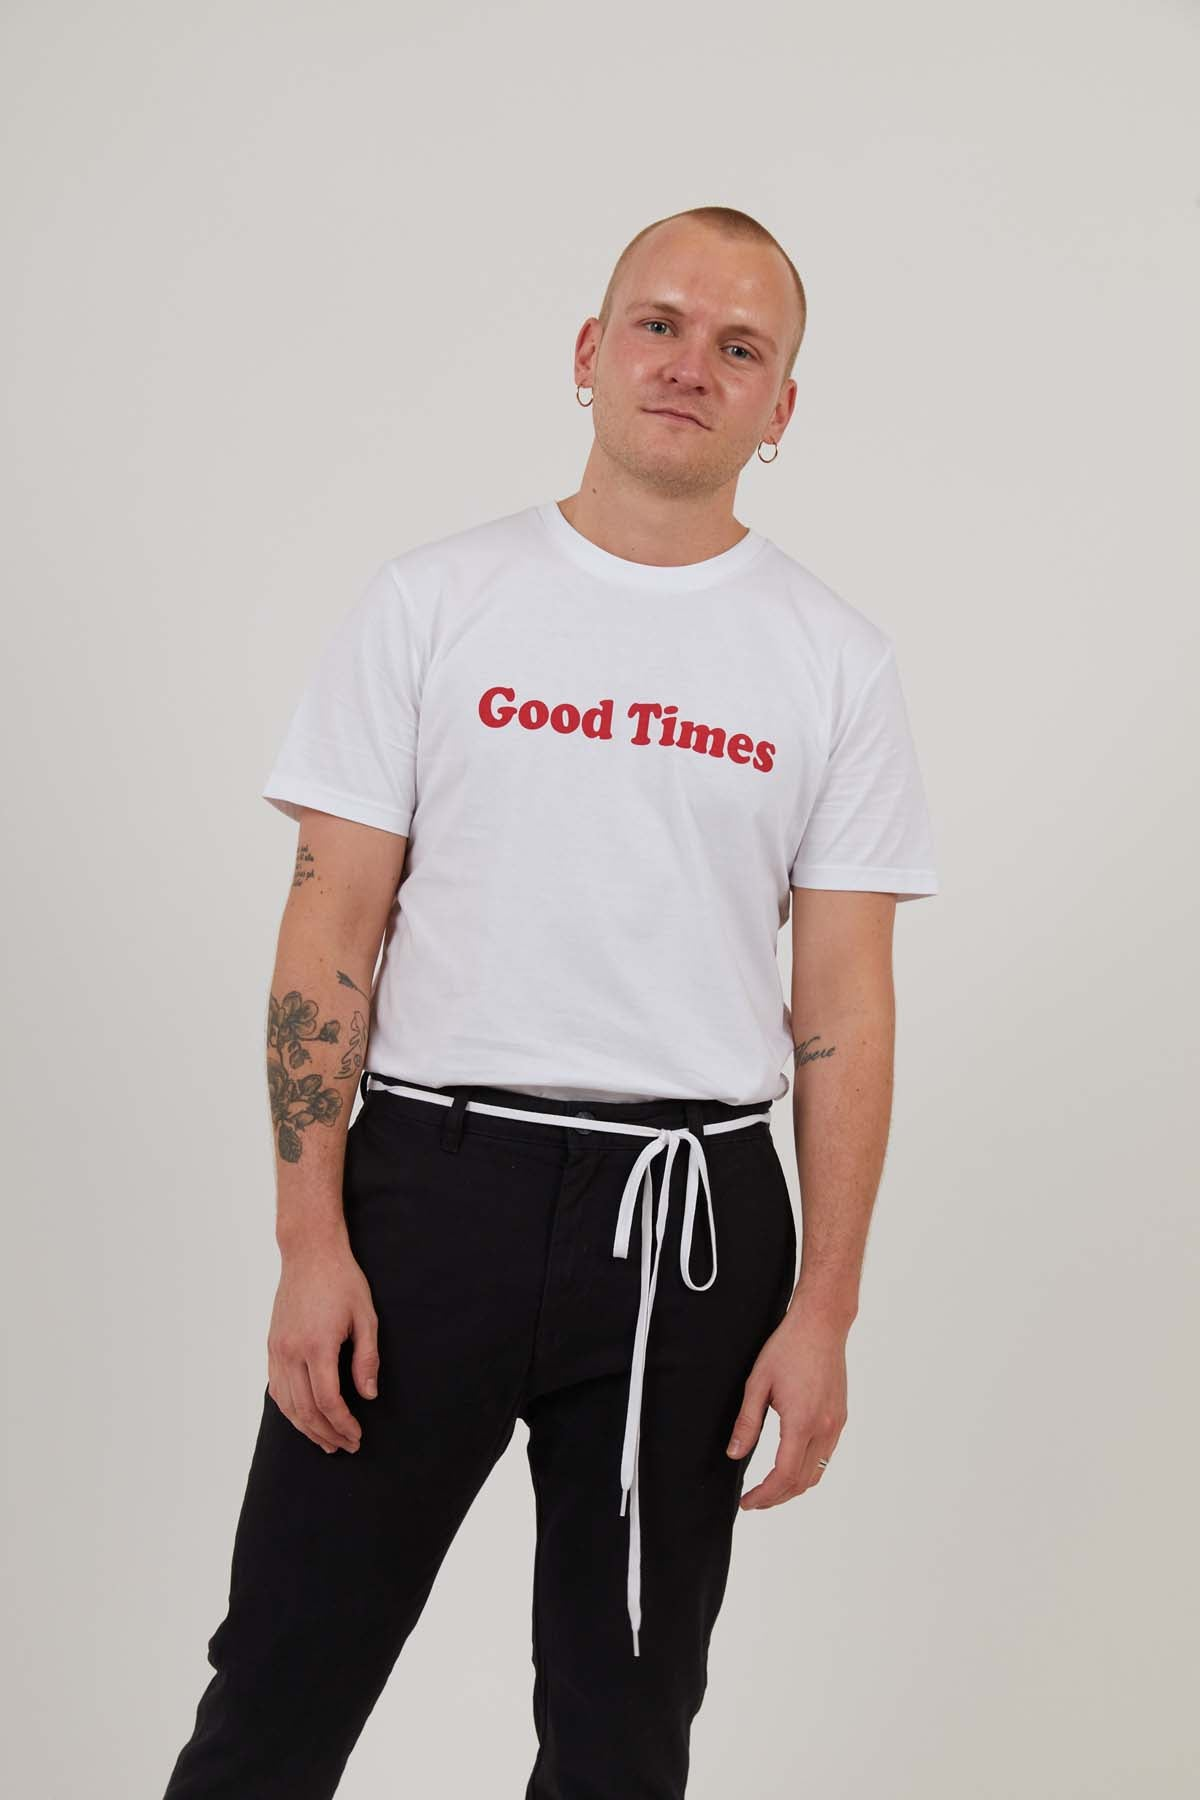 Good Times - Men's Organic Cotton Print Tee - White - MEDIUM ONLY